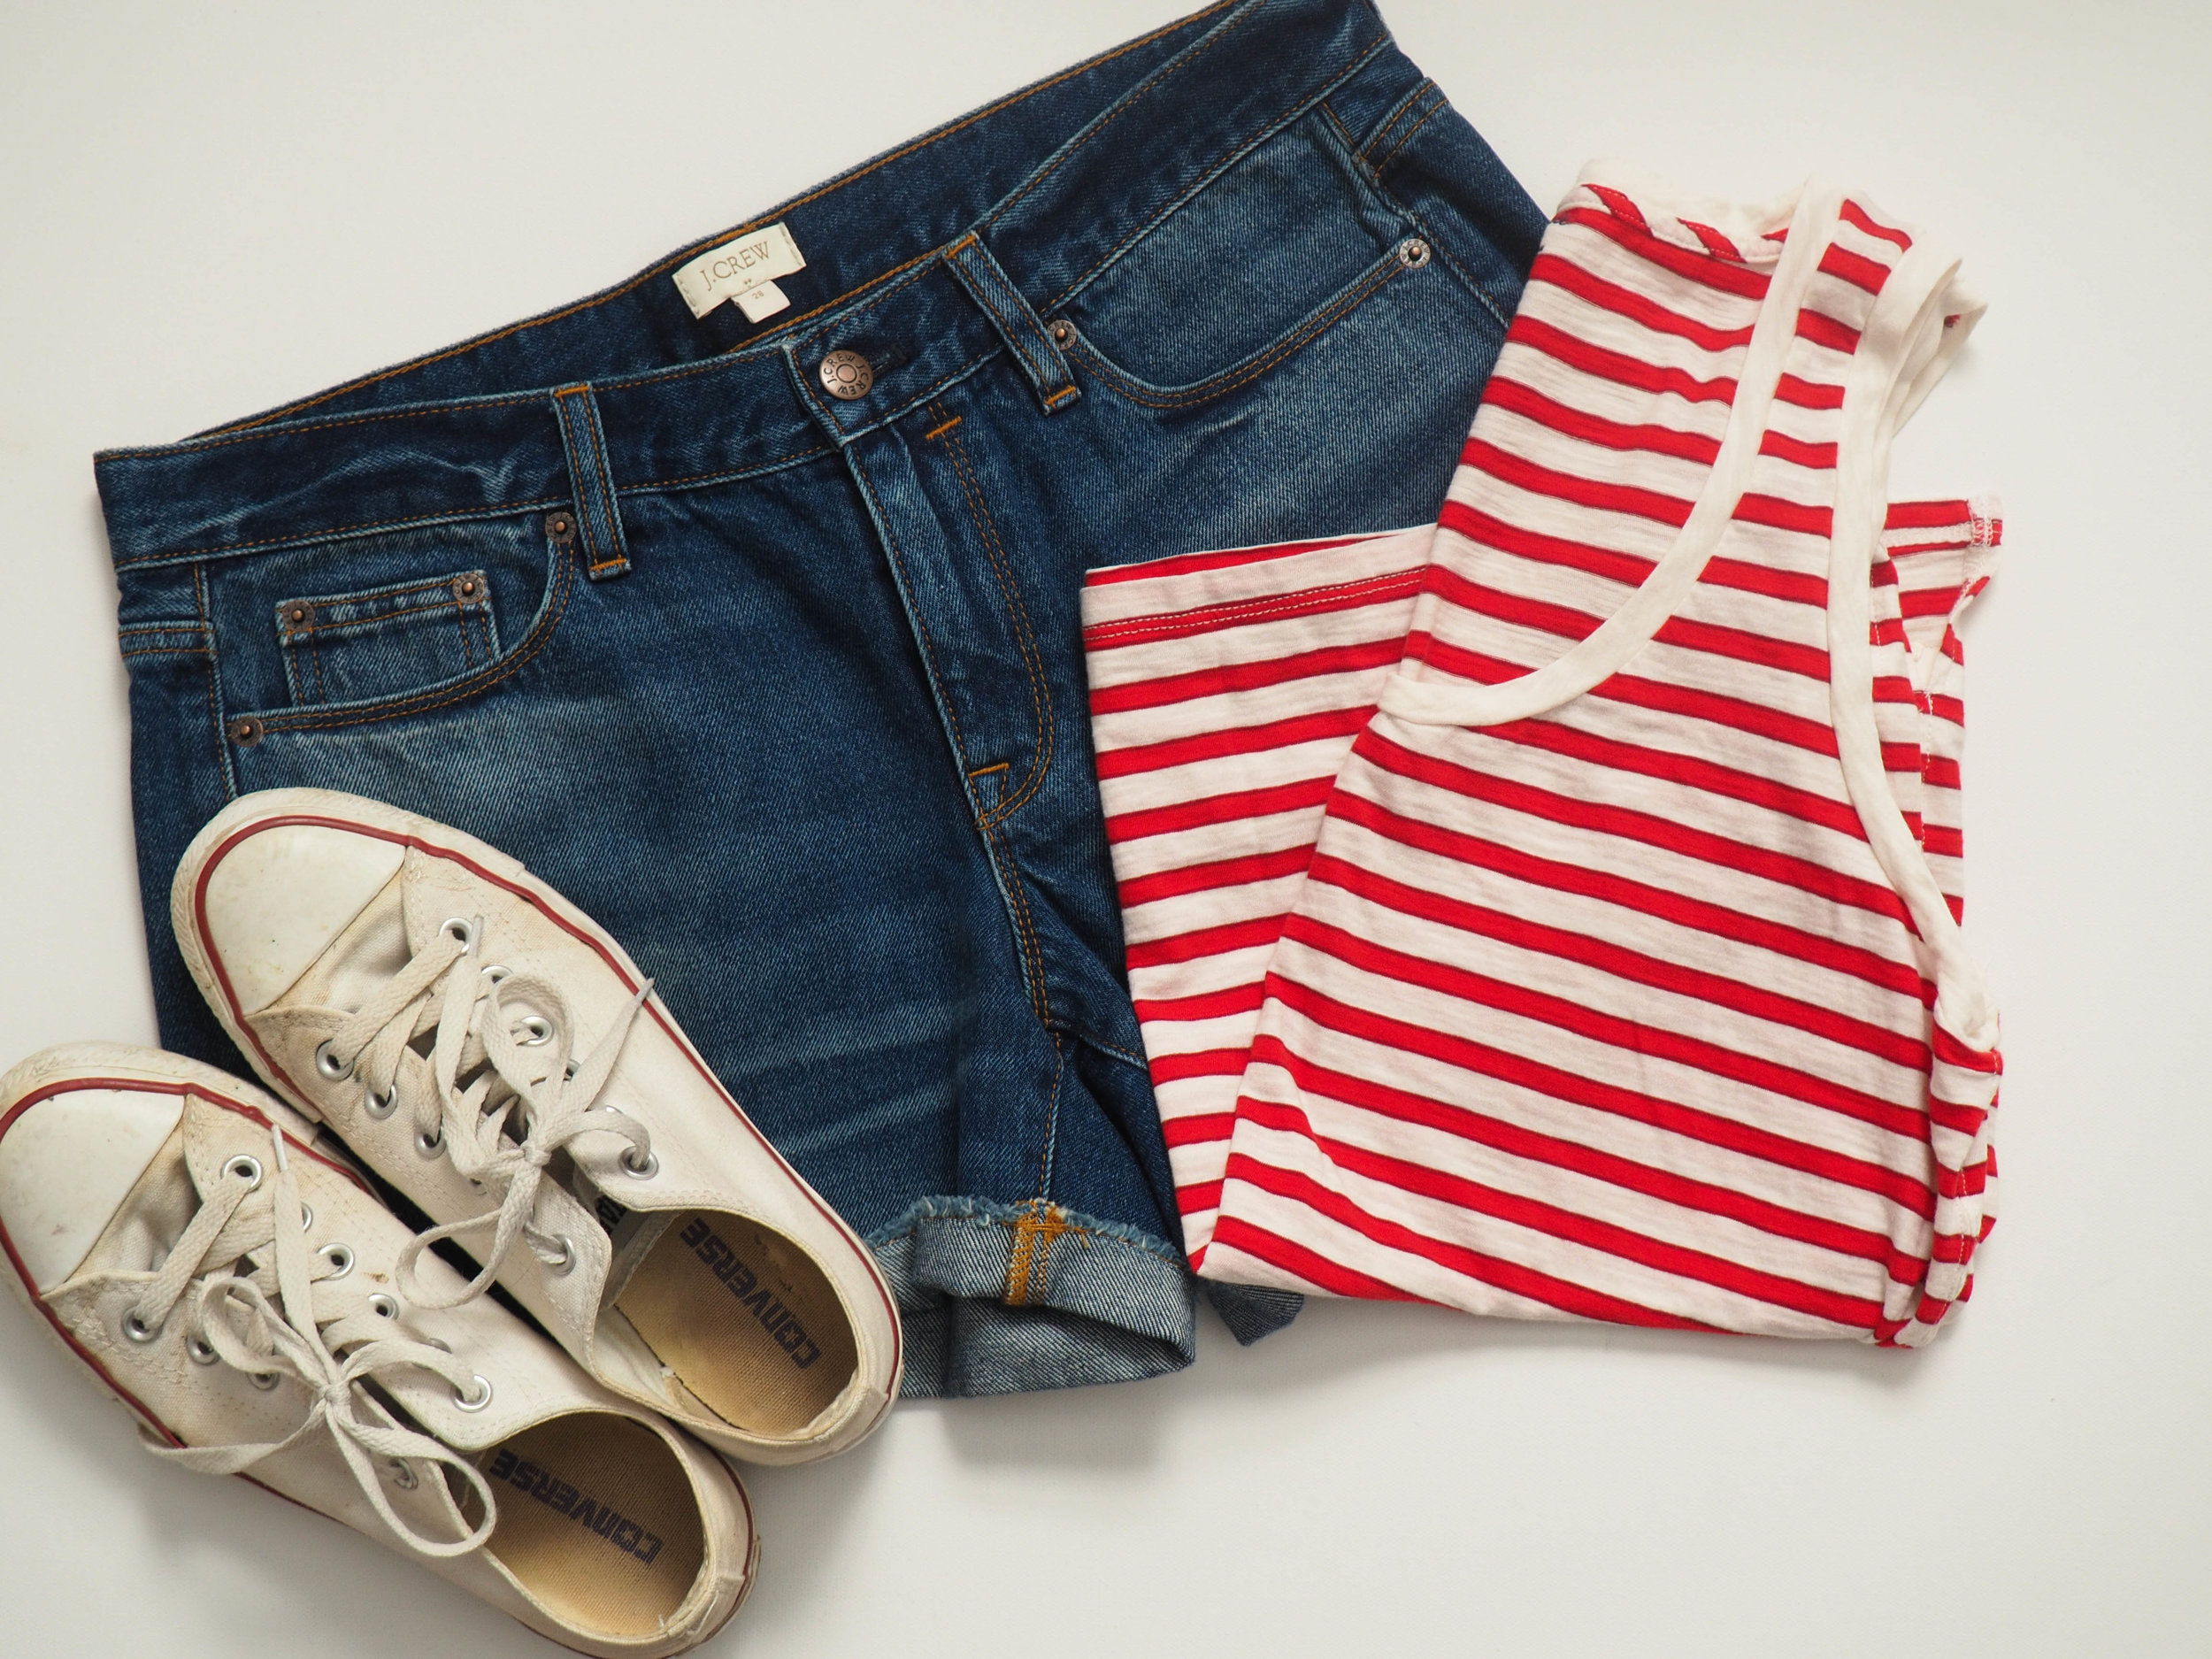 Madewell Striped Tank (  similar ) |  J. Crew Factory Denim Short  |  Converse Chuck Taylors